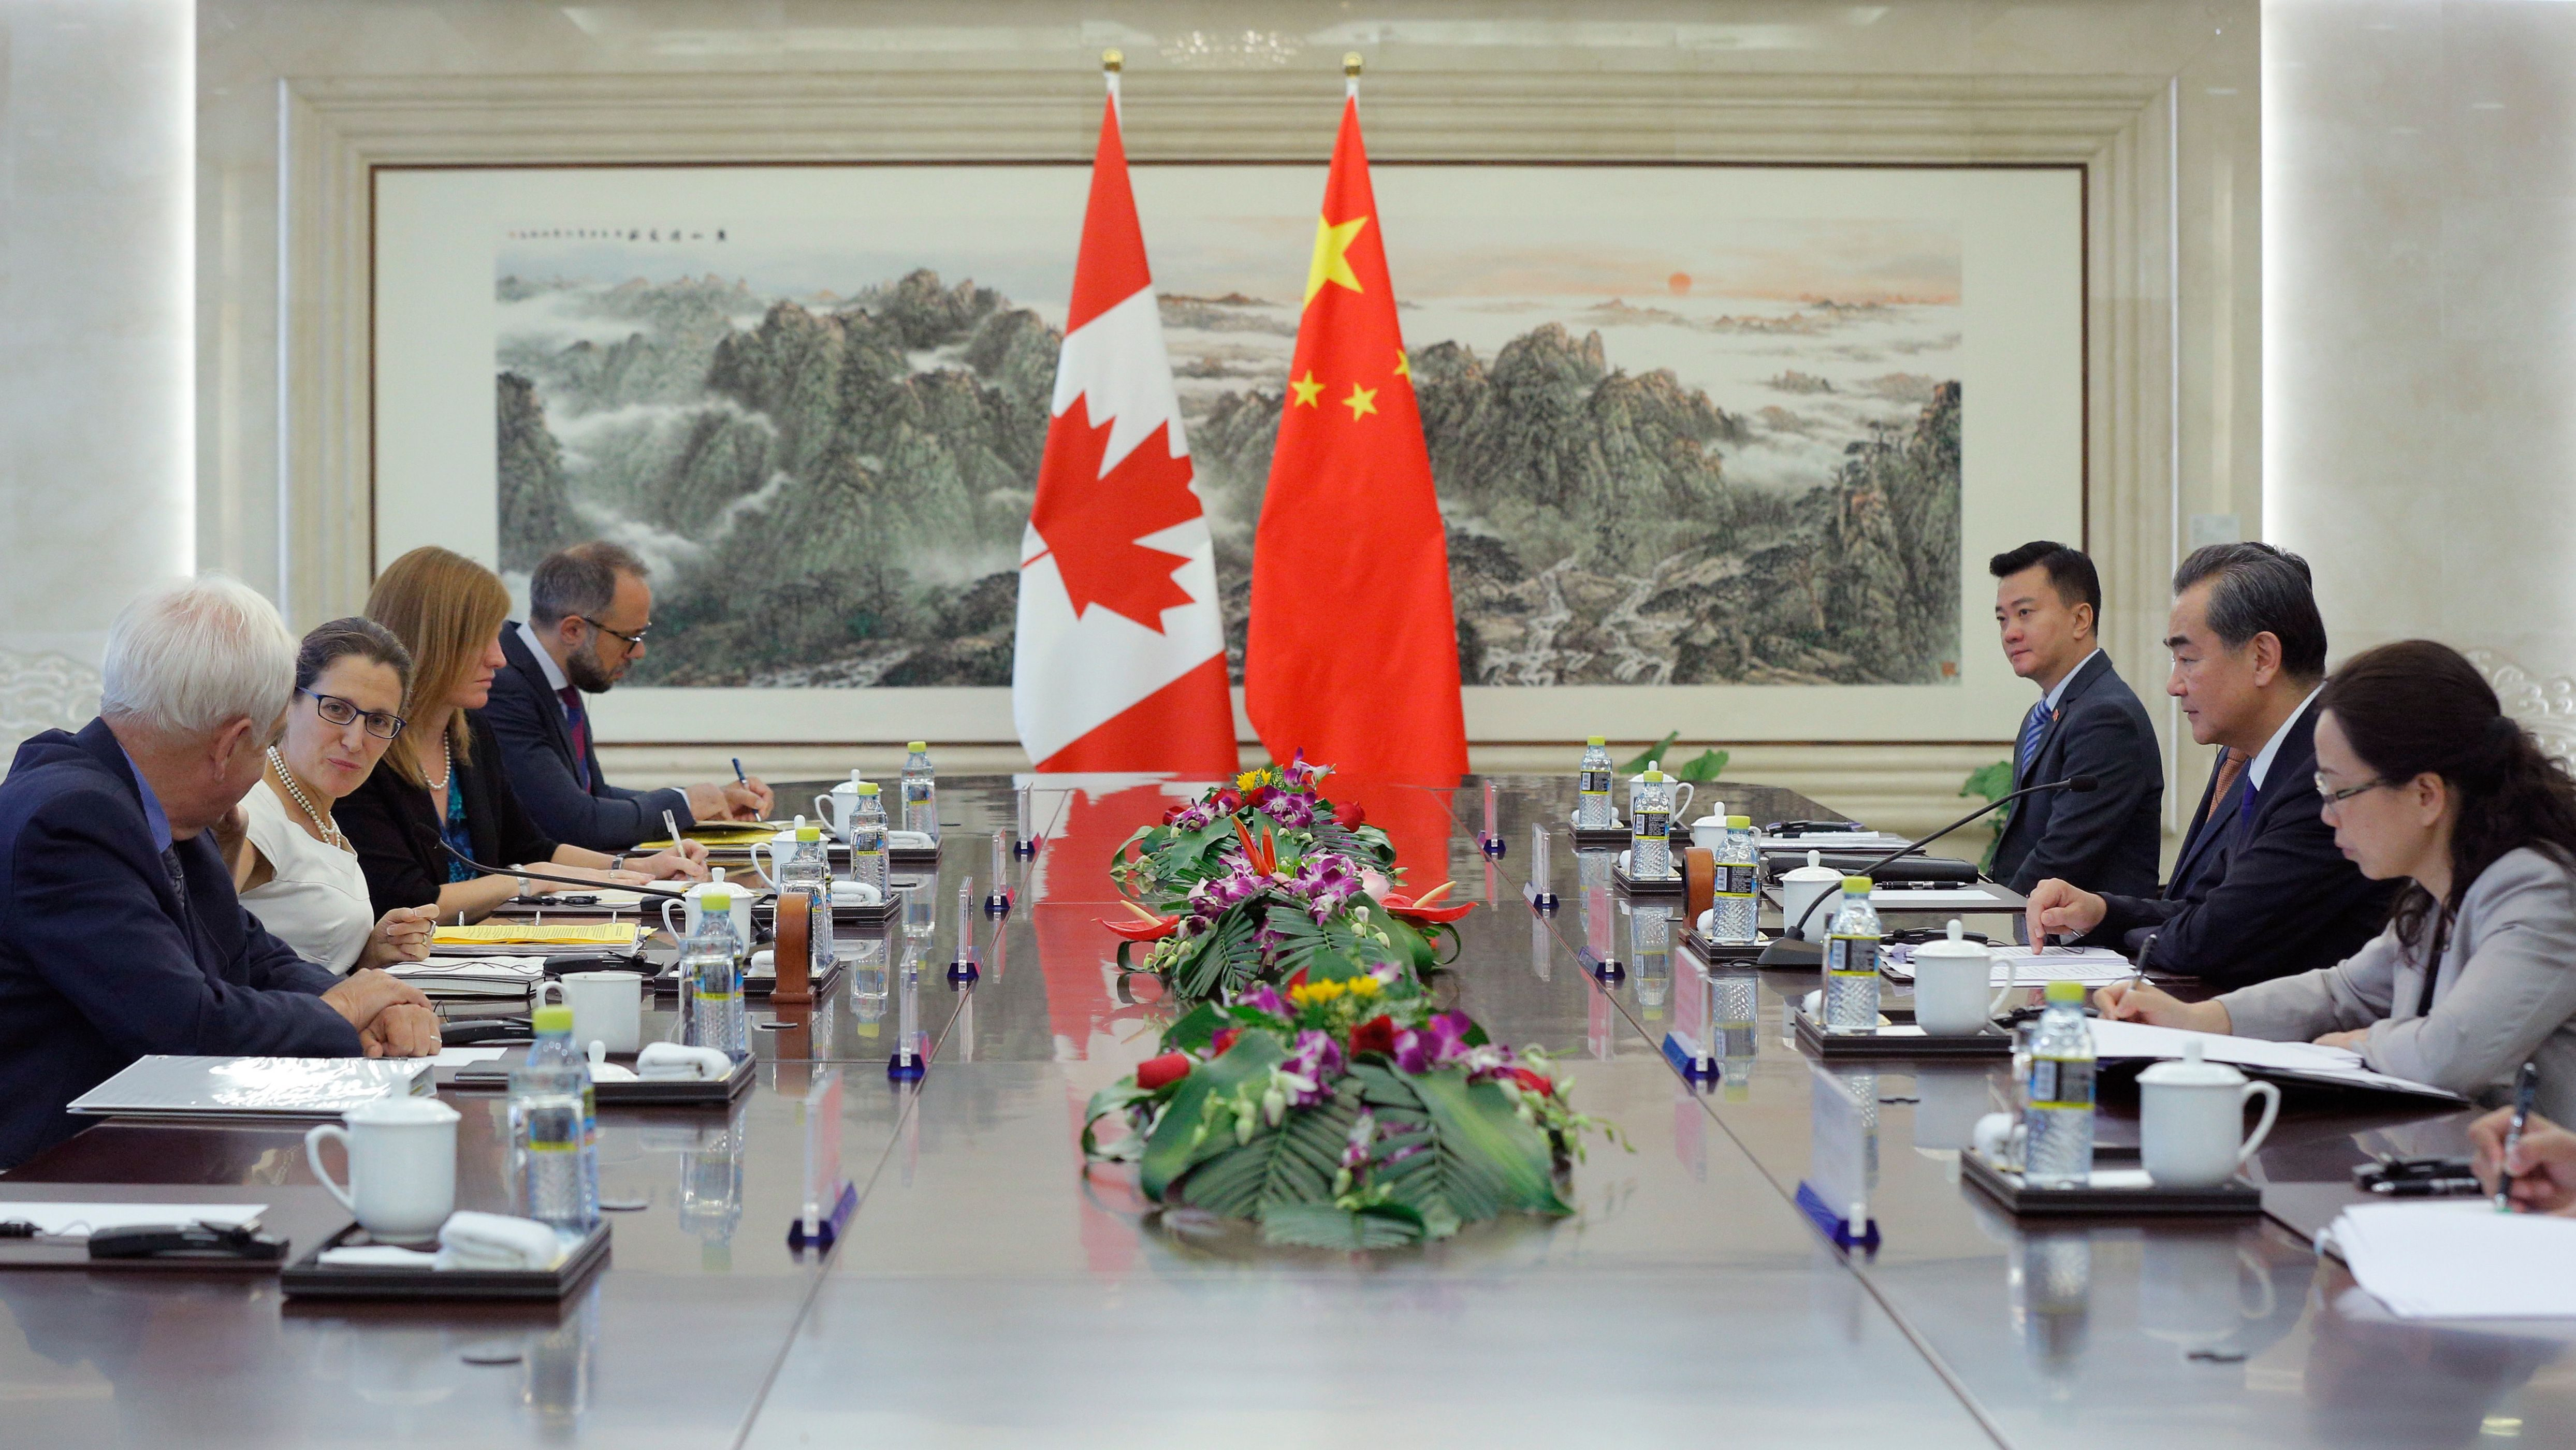 Canada's Foreign Minister Chrystia Freeland, second left, and China's Foreign Minister Wang Yi, second right, hold a meeting at the Ministry of Foreign Affairs in Beijing,